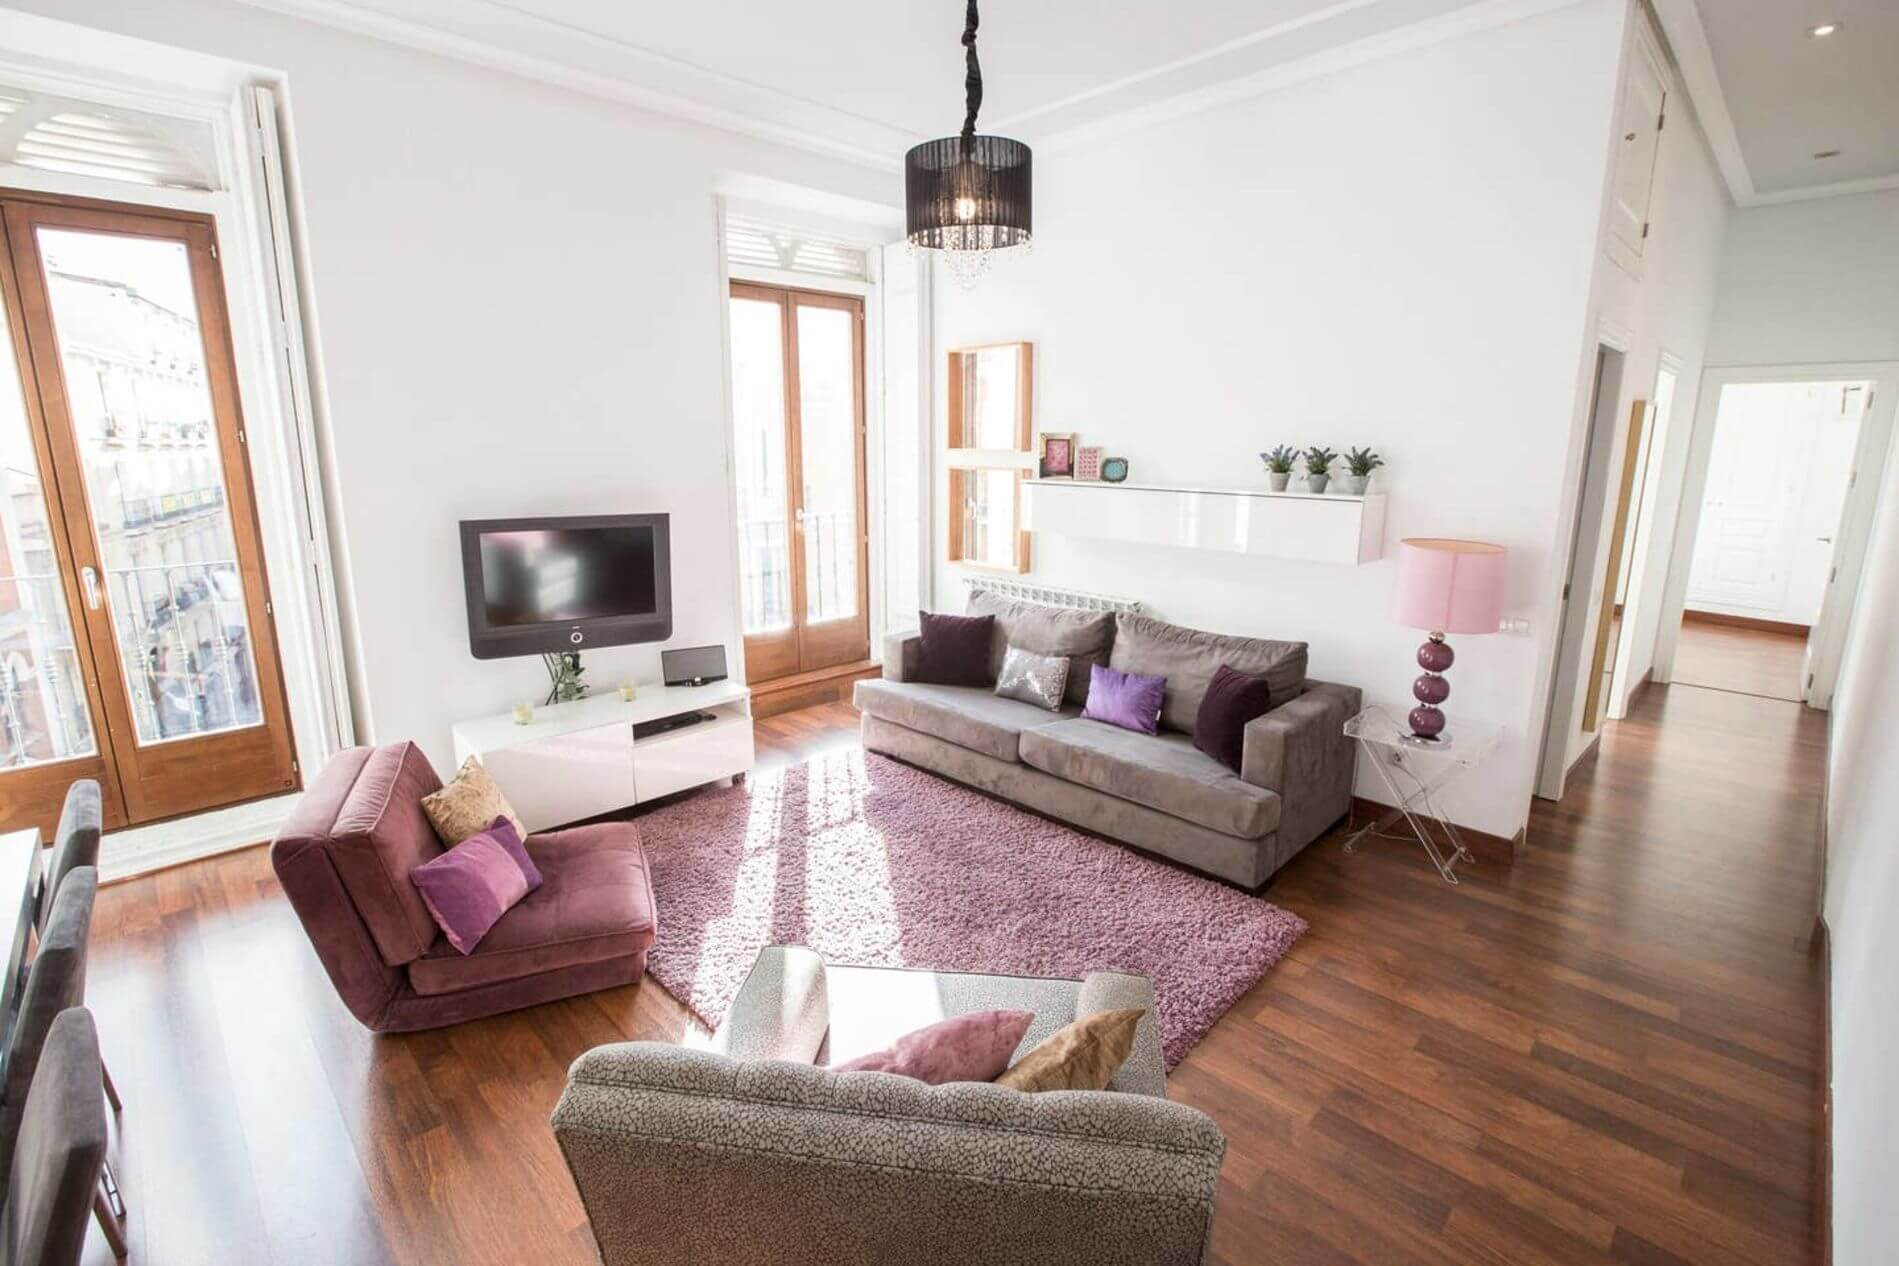 Elegant serviced apartment in Opera area Madrid that allows pets